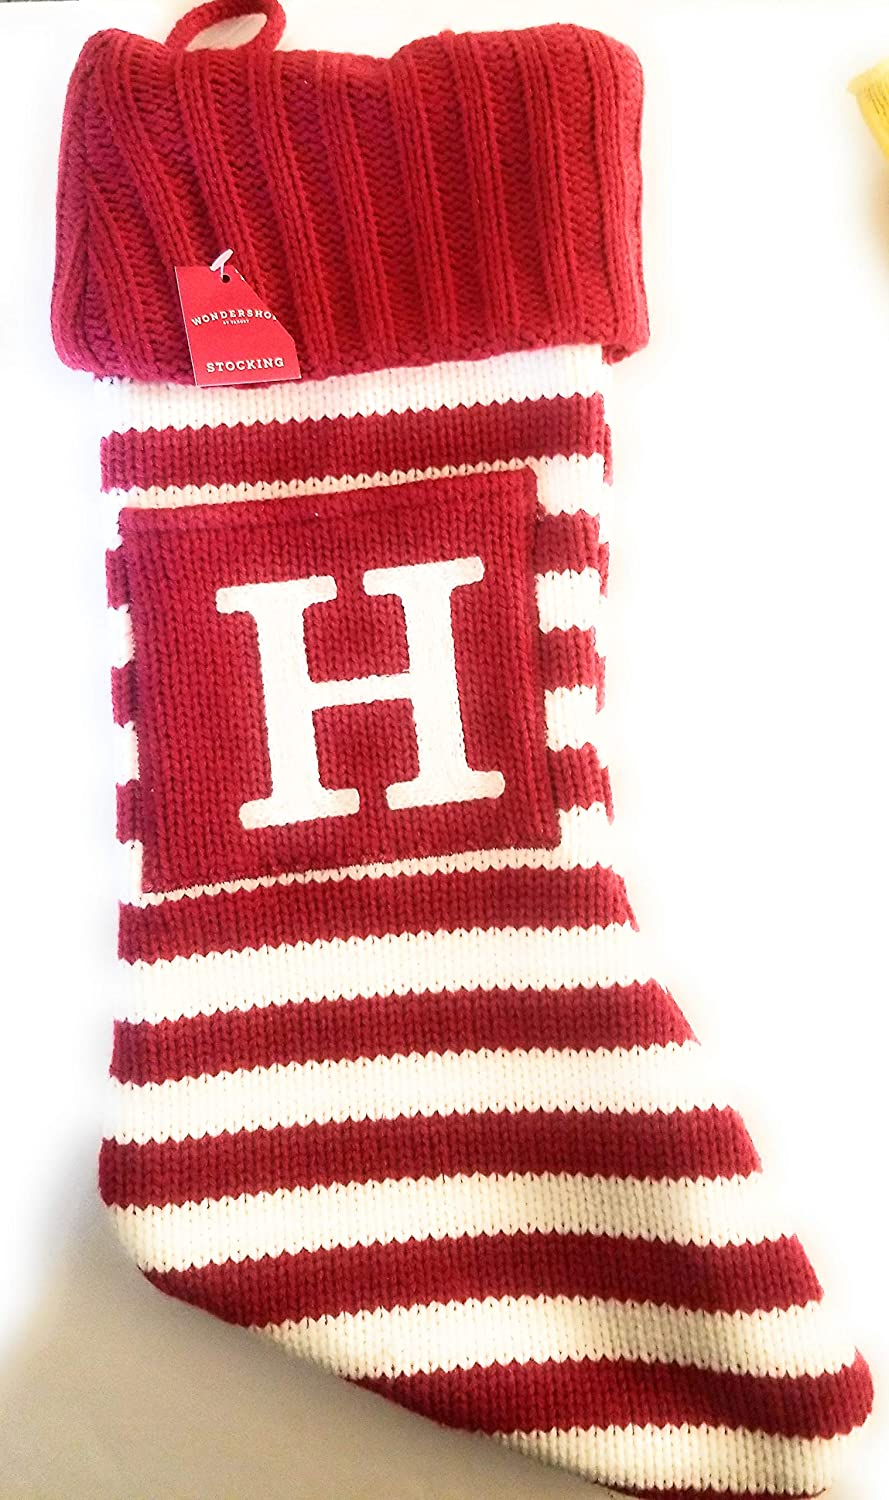 Personalized Holiday Stockings Vibrant Colorful Christmas Stockings Mid Century Modern Contemporary Stripes Monogrammed Names Wonderland